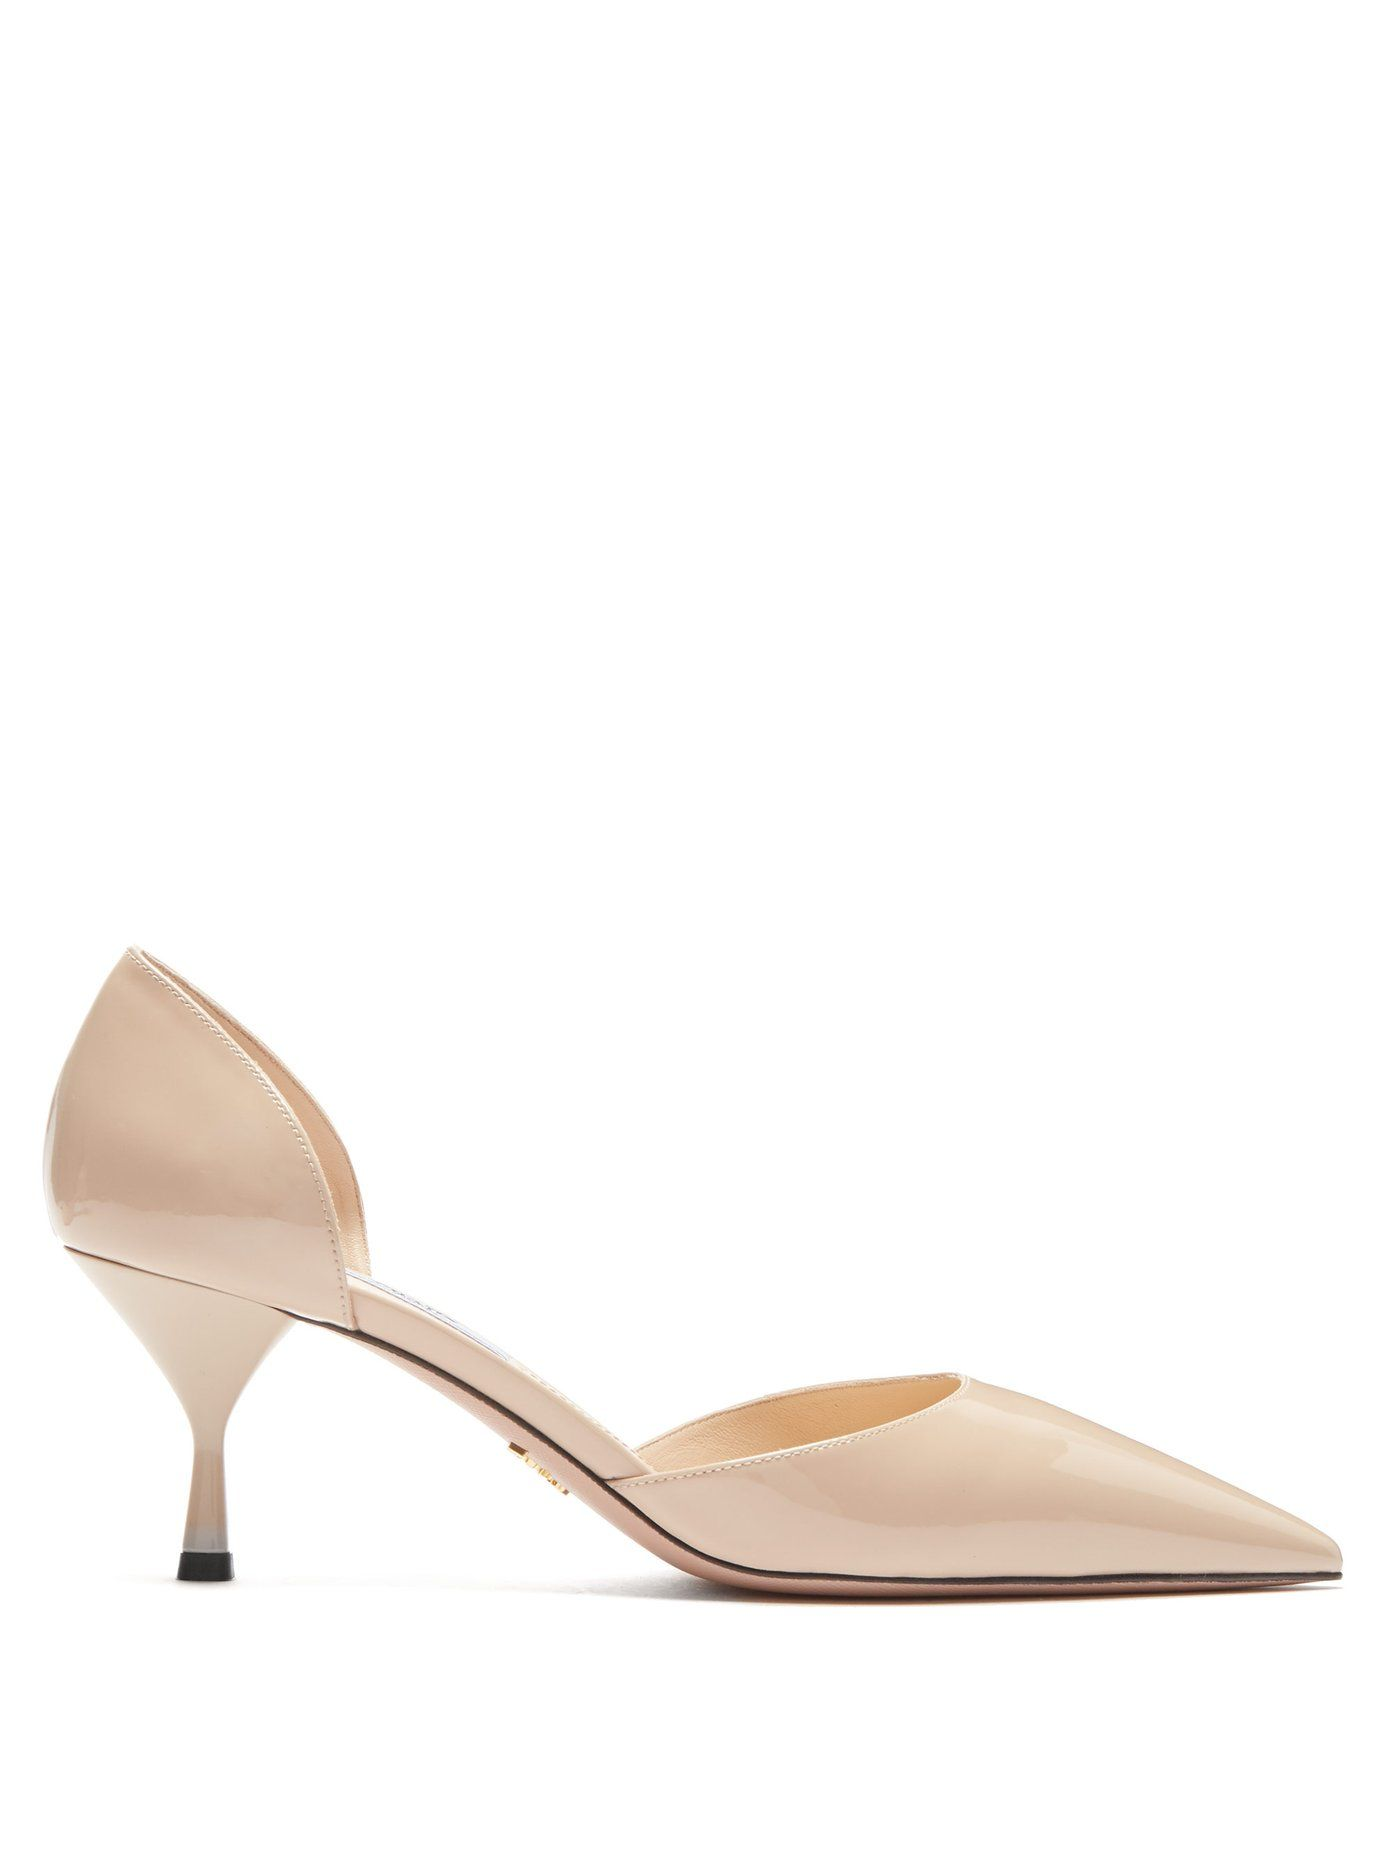 6921d10e1ef These beige-pink patent leather d Orsay pumps from Prada encapsulate the  refined Italian